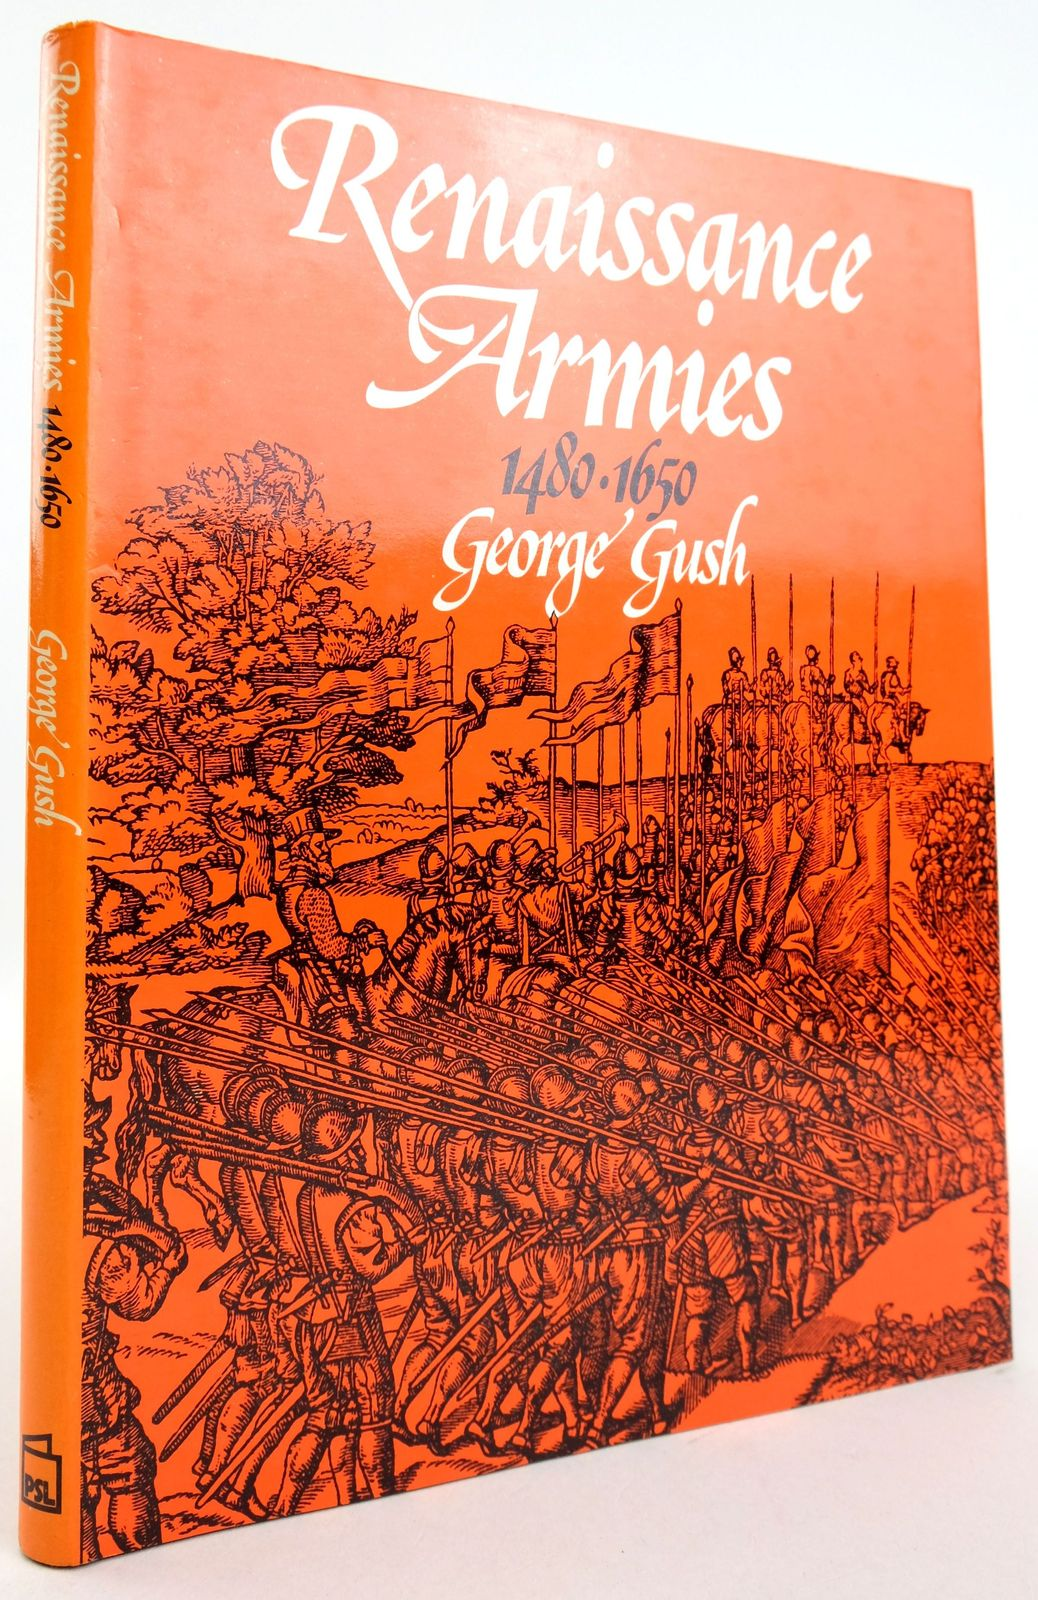 Photo of RENAISSANCE ARMIES 1480-1650- Stock Number: 1819700